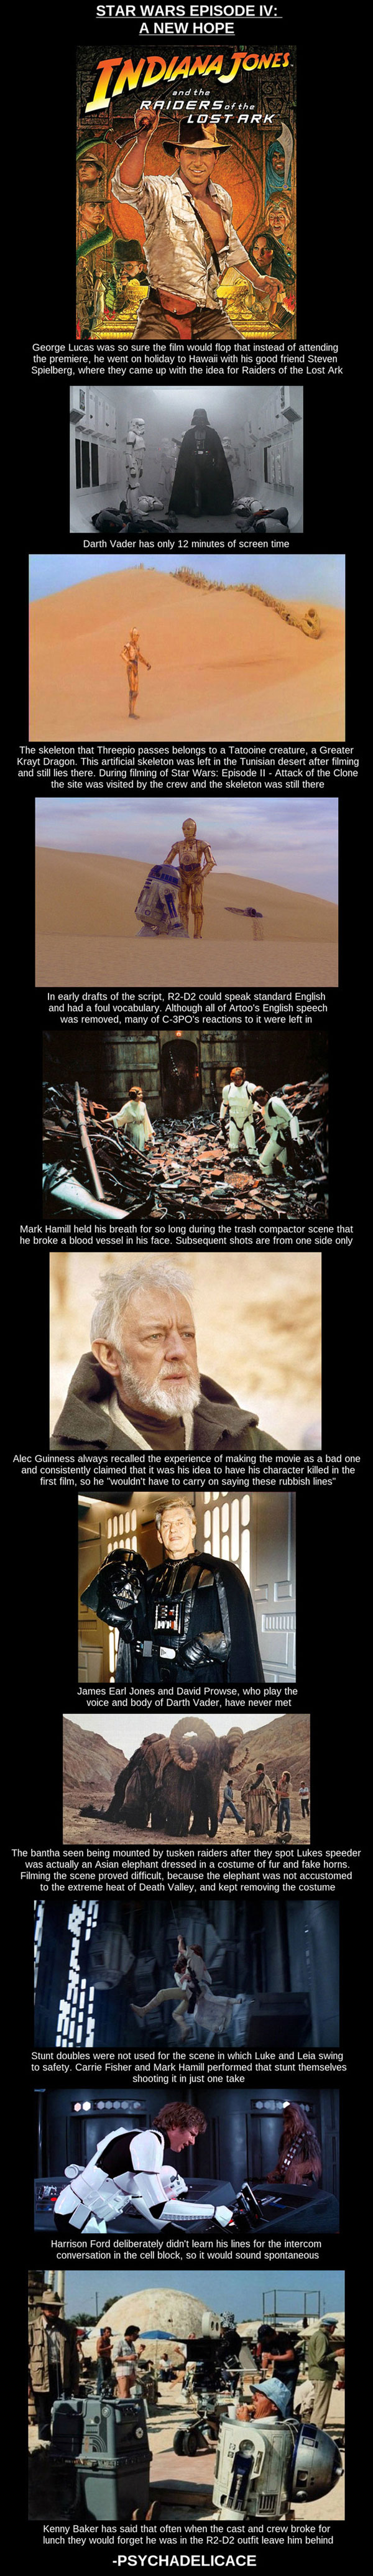 star_wars_a_new_hope_facts-1